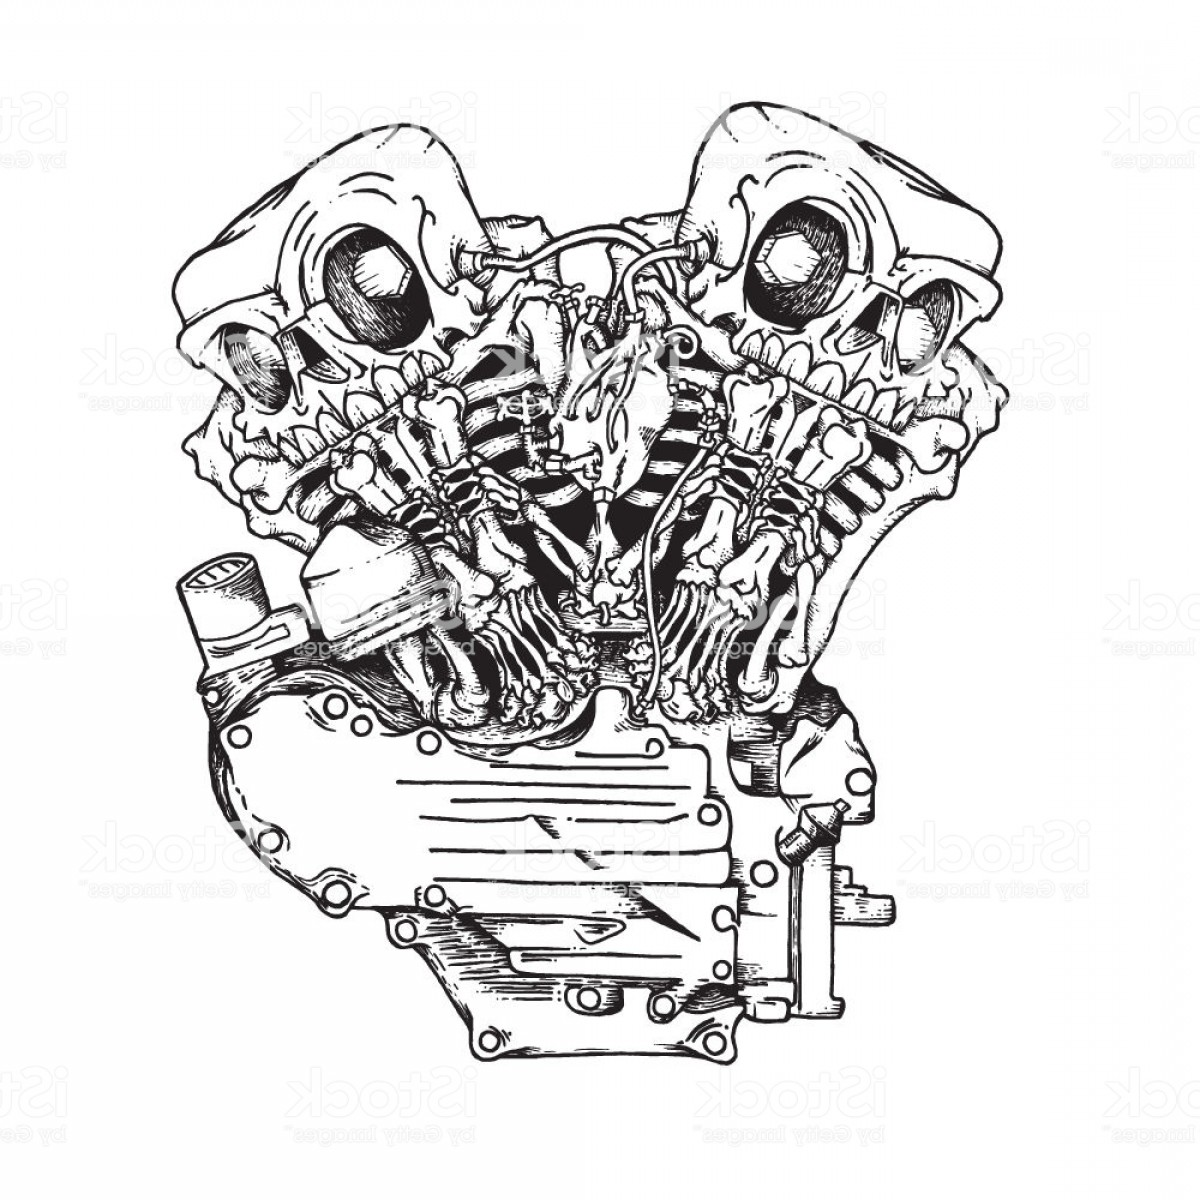 hight resolution of 1200x1200 stylized knuckle twin motorcycle engine gm lazttweet motorcycle engine sketch